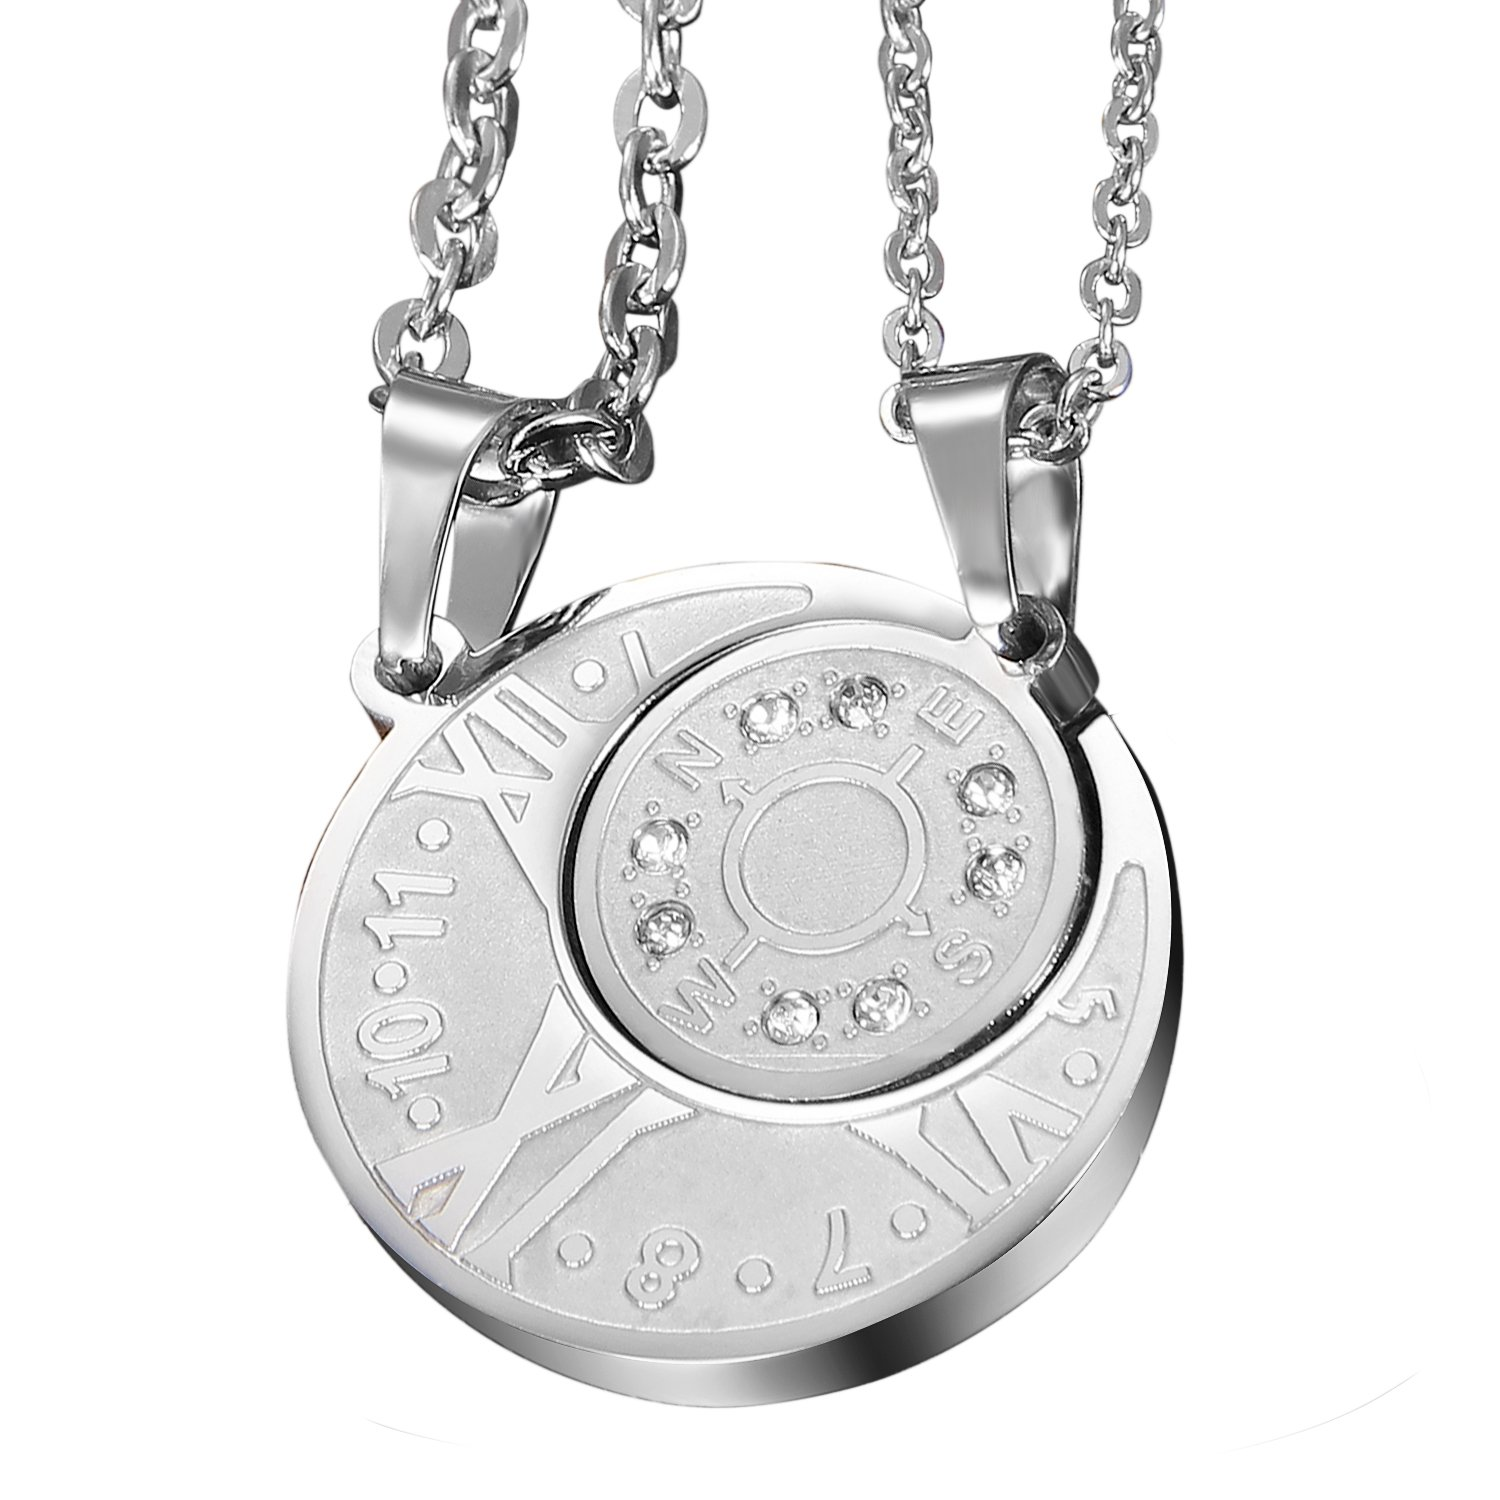 2pcs Couples Stainless Steel Vintage Numeral Compass Puzzle Necklace with Chain for Oidea O0070054-CA